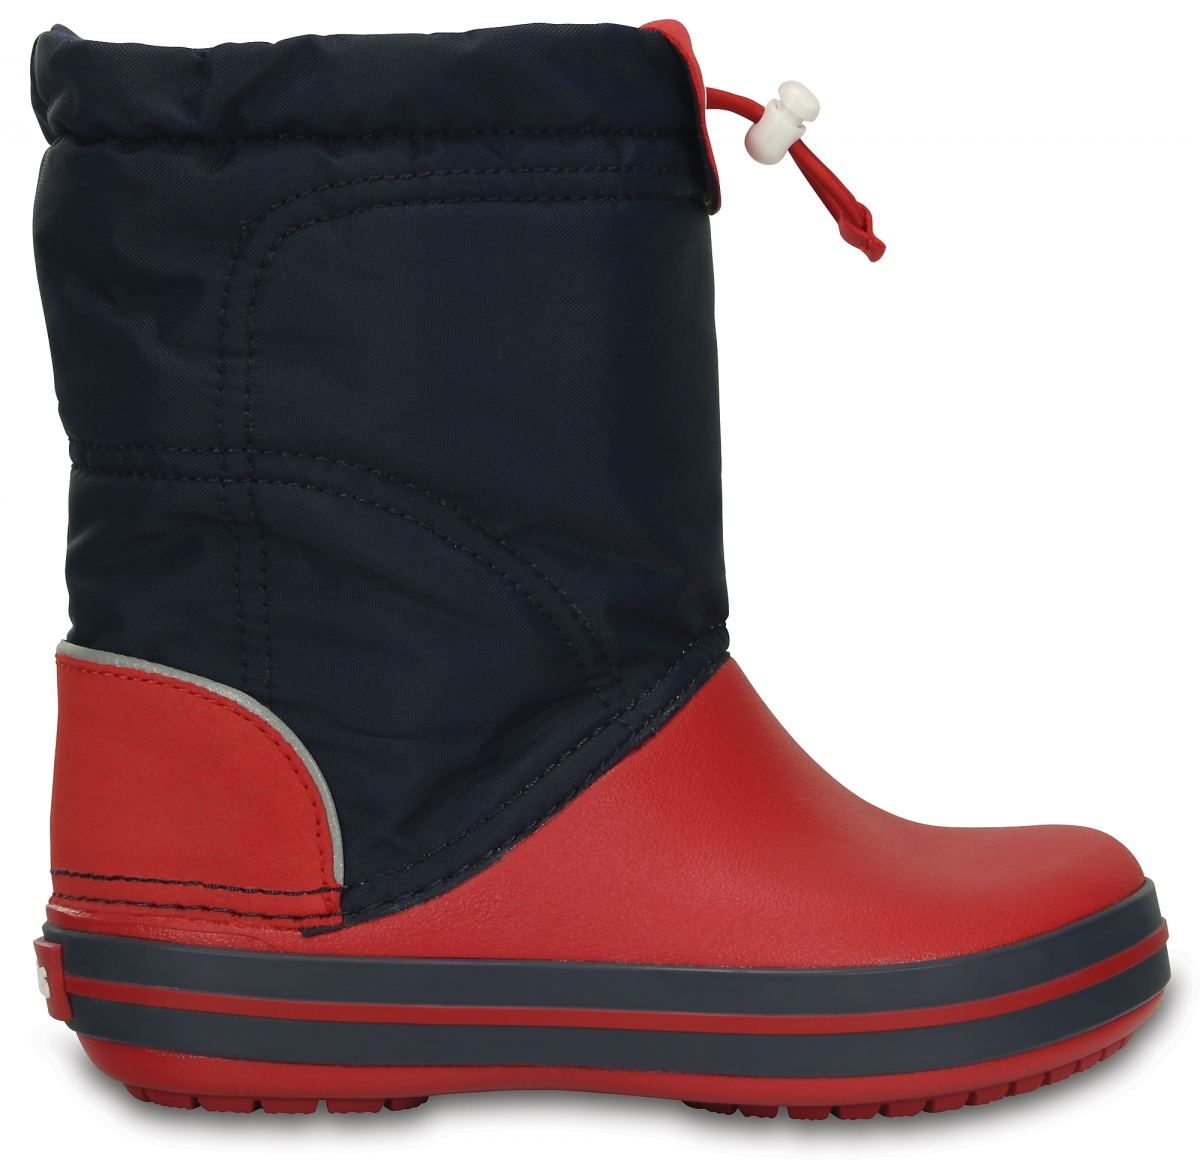 Crocs Crocband LodgePoint Boot Kids - Navy/Red, J2 (33-34)